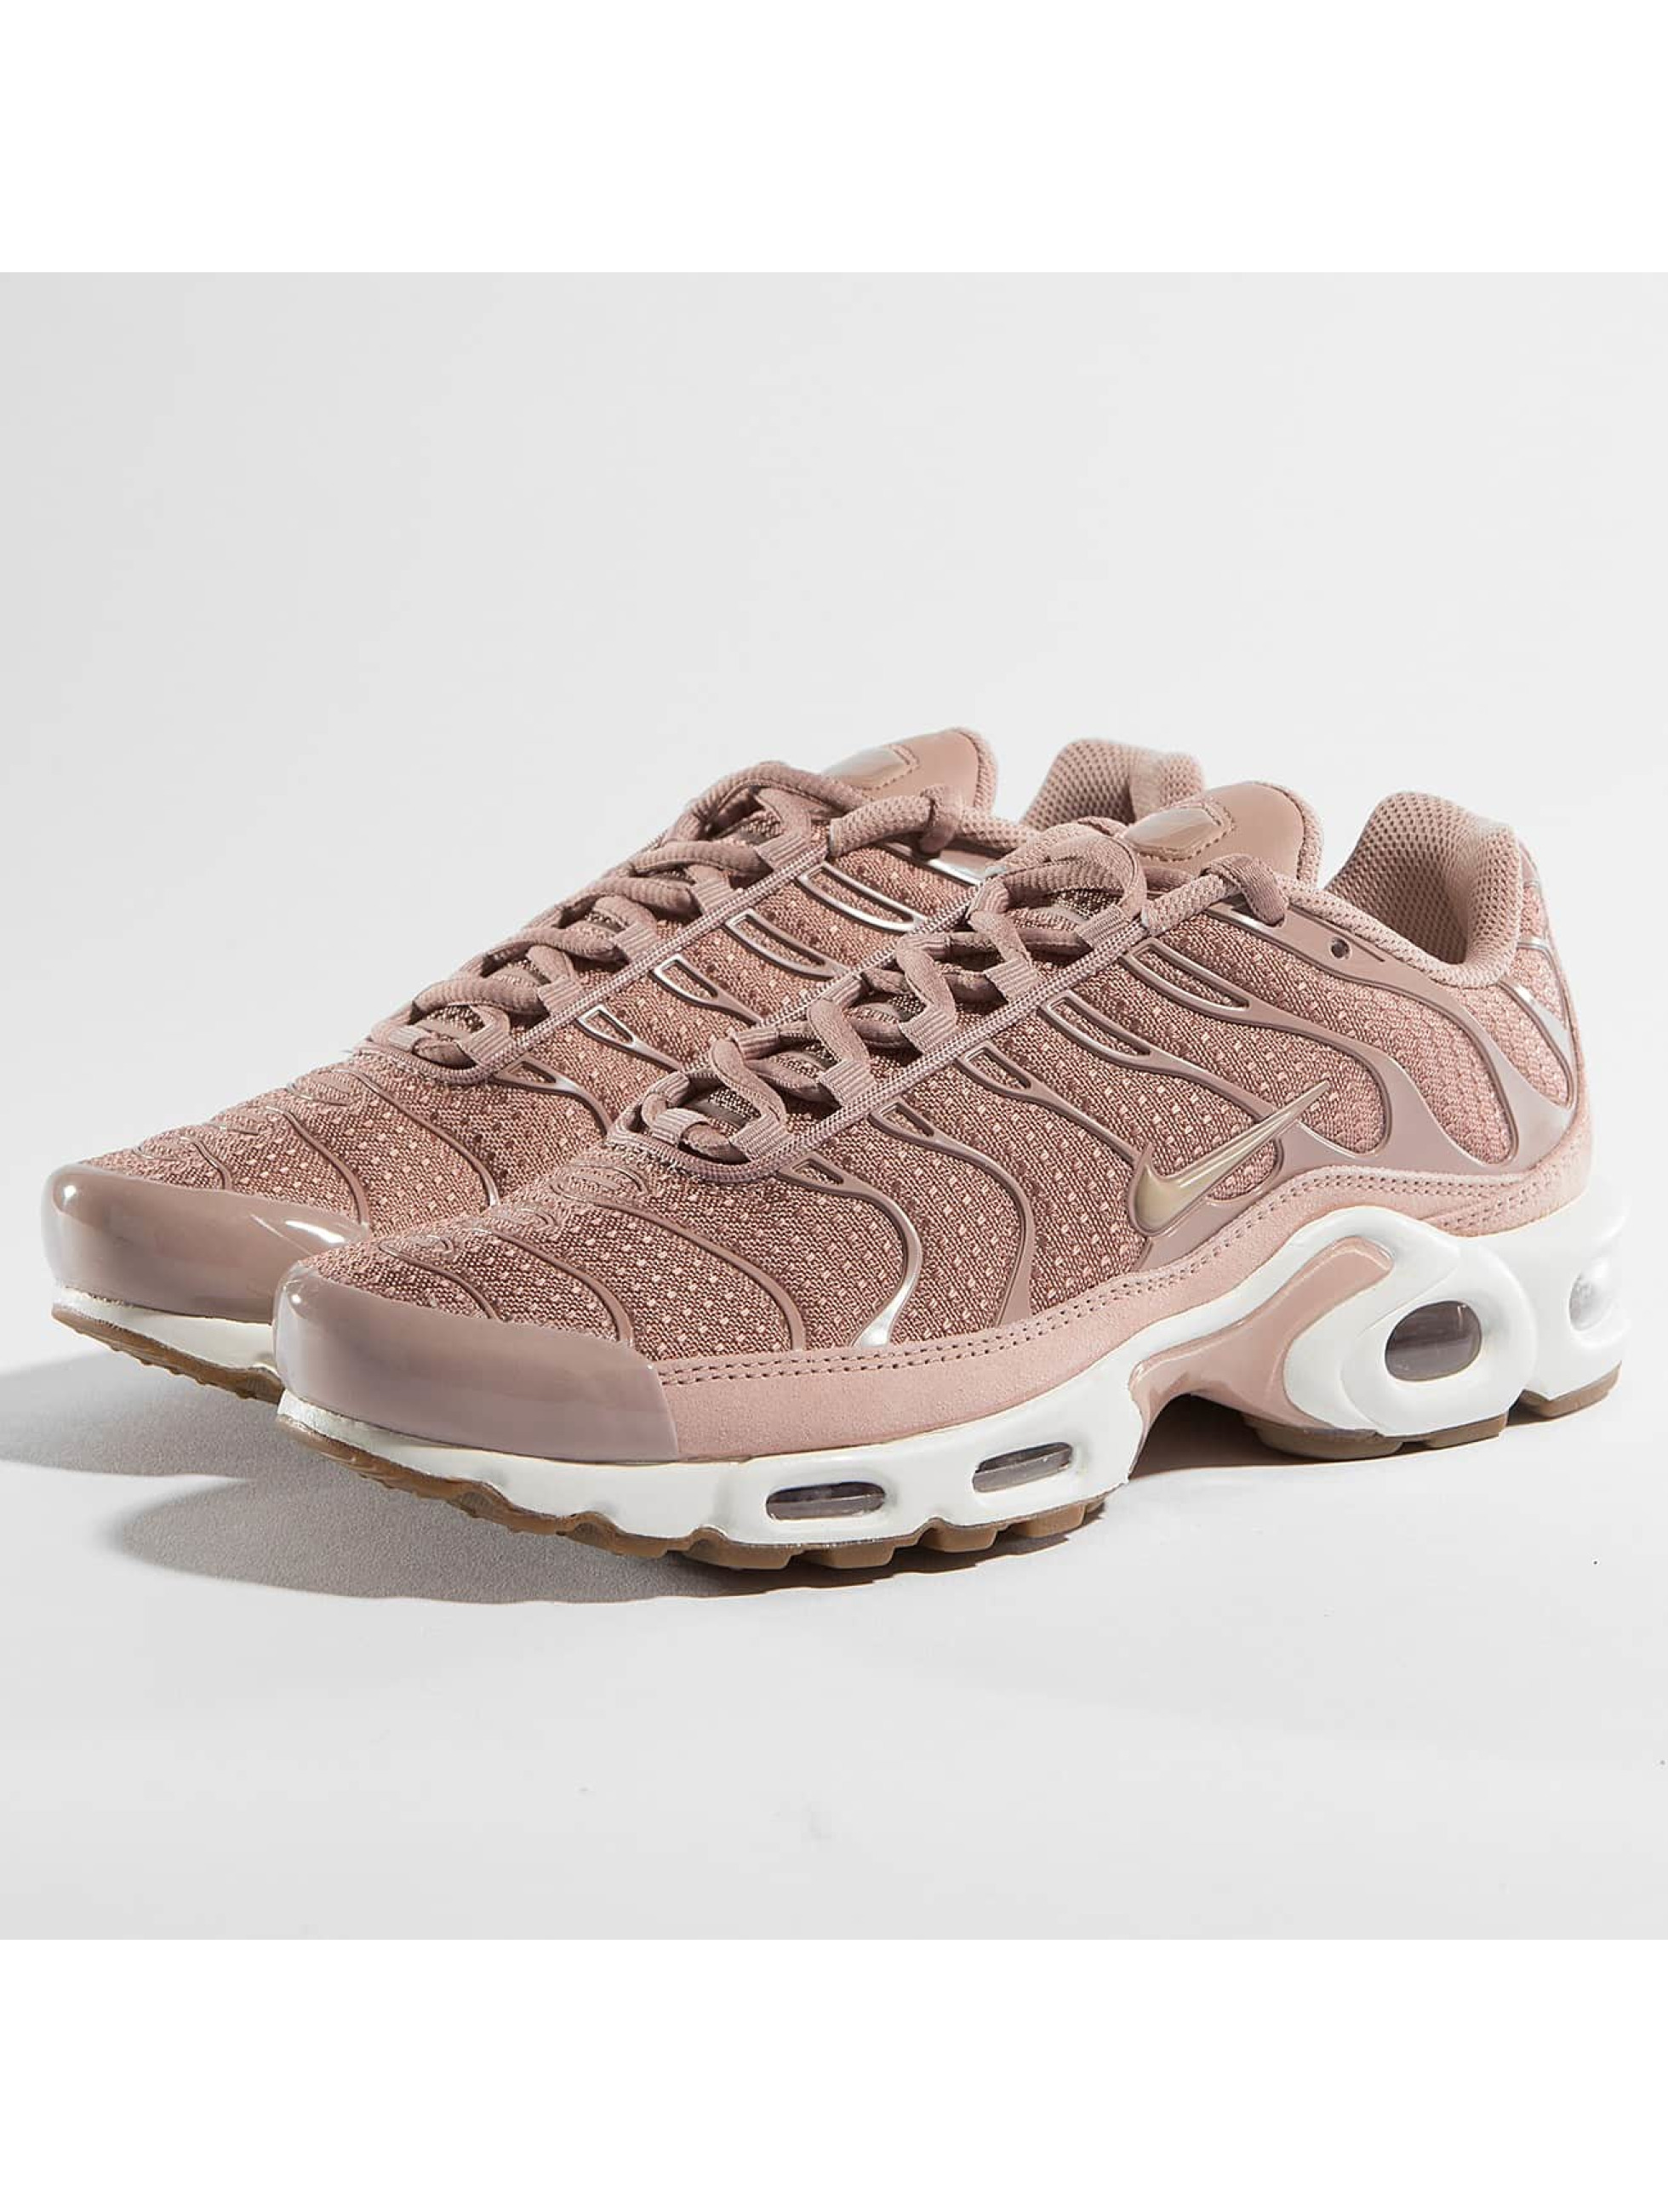 nike damen sneaker air max plus in pink 362583. Black Bedroom Furniture Sets. Home Design Ideas